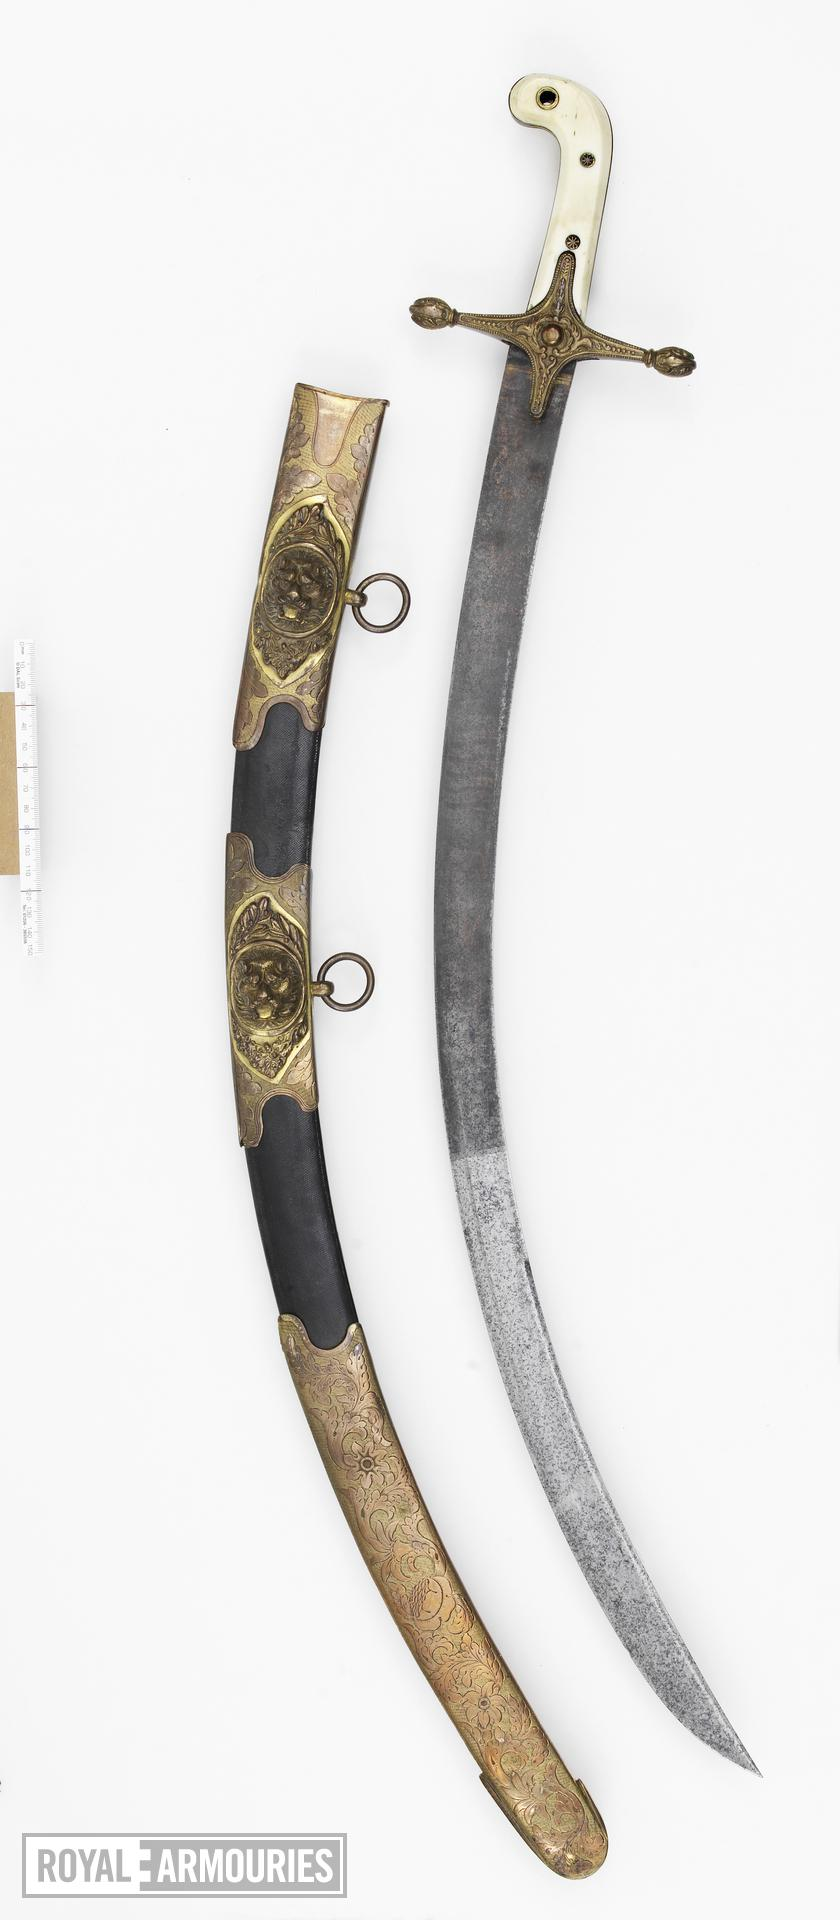 Sword and scabbards Heavy Cavalry Officer's Dress sword and two scabbards. Mameluke-hilted sword for 5th Dragoon Guards.